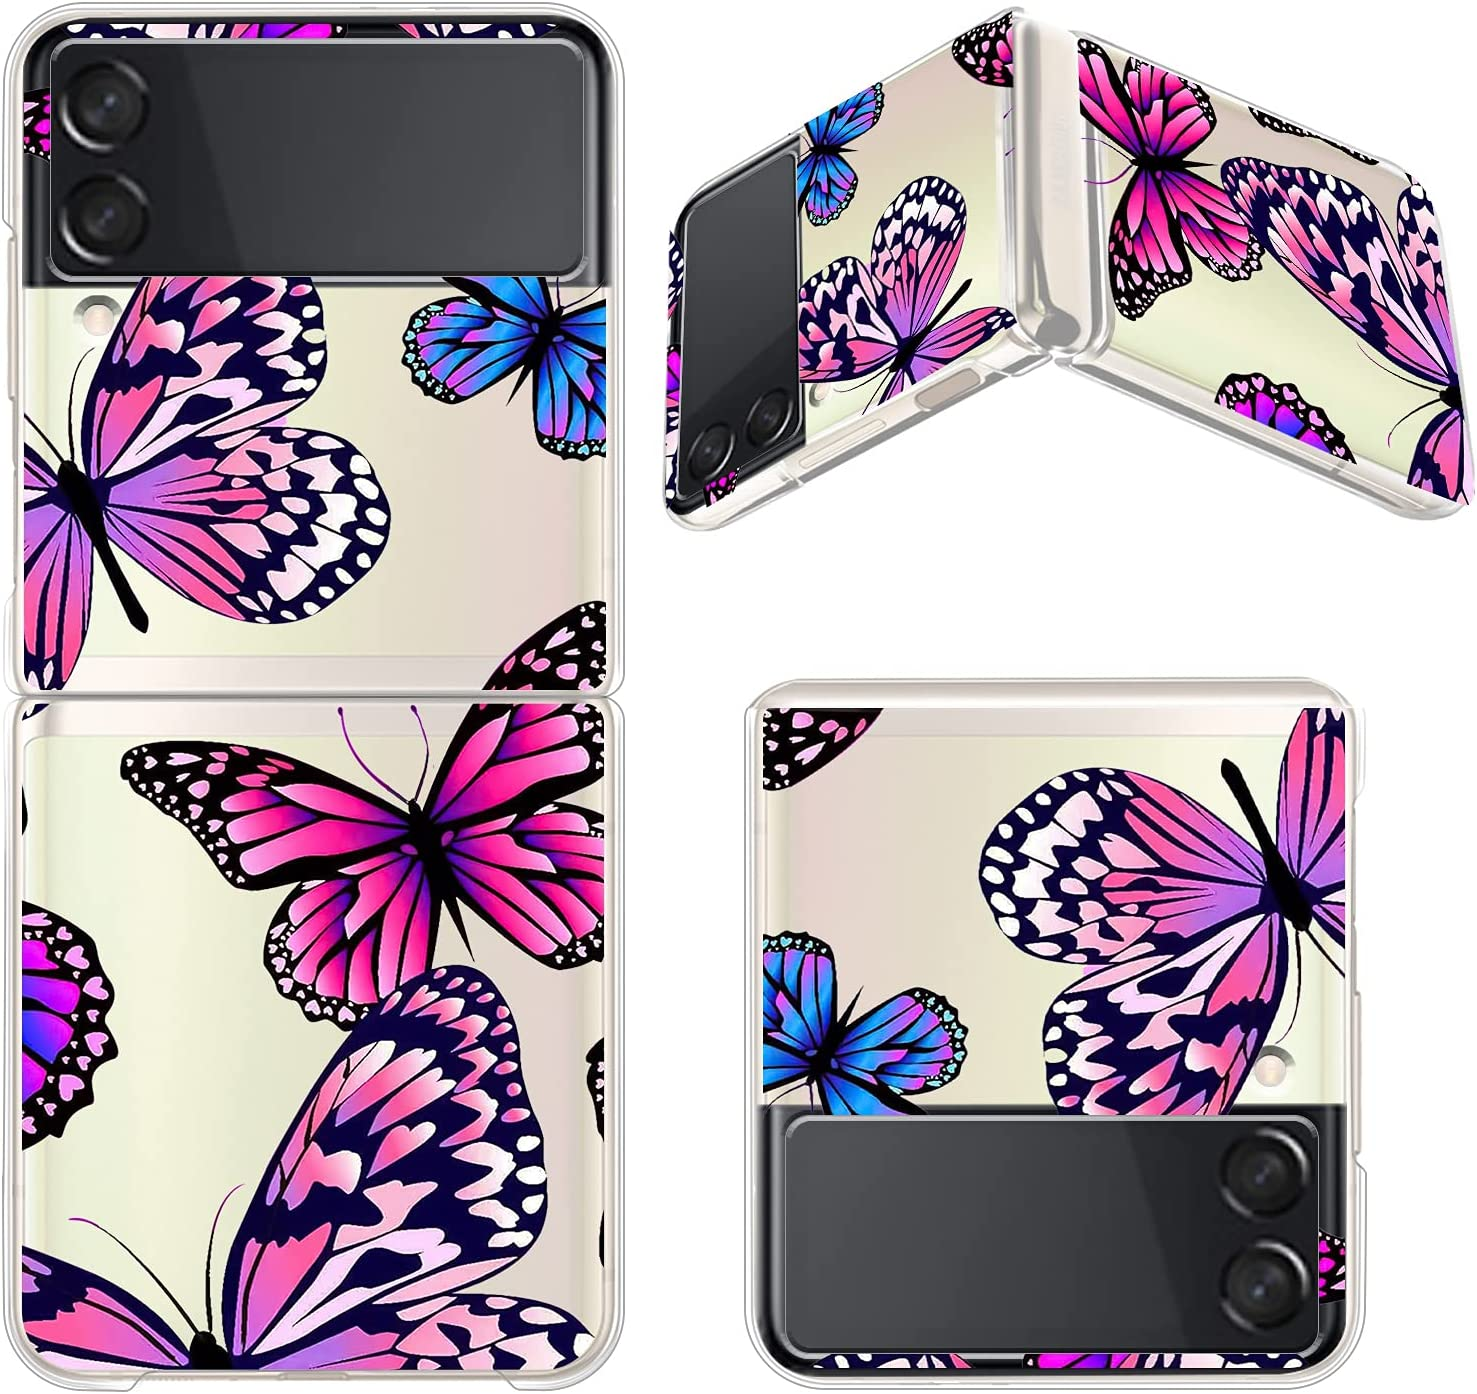 ITELINMON Clear Case Compatible with Samsung Galaxy Z Flip 3, Cute Design Pattern Hard PC Shockproof Protective Case for Women Girls, Ultra Slim Transparent Cover for Galaxy Z Flip 3 (Butterfly)